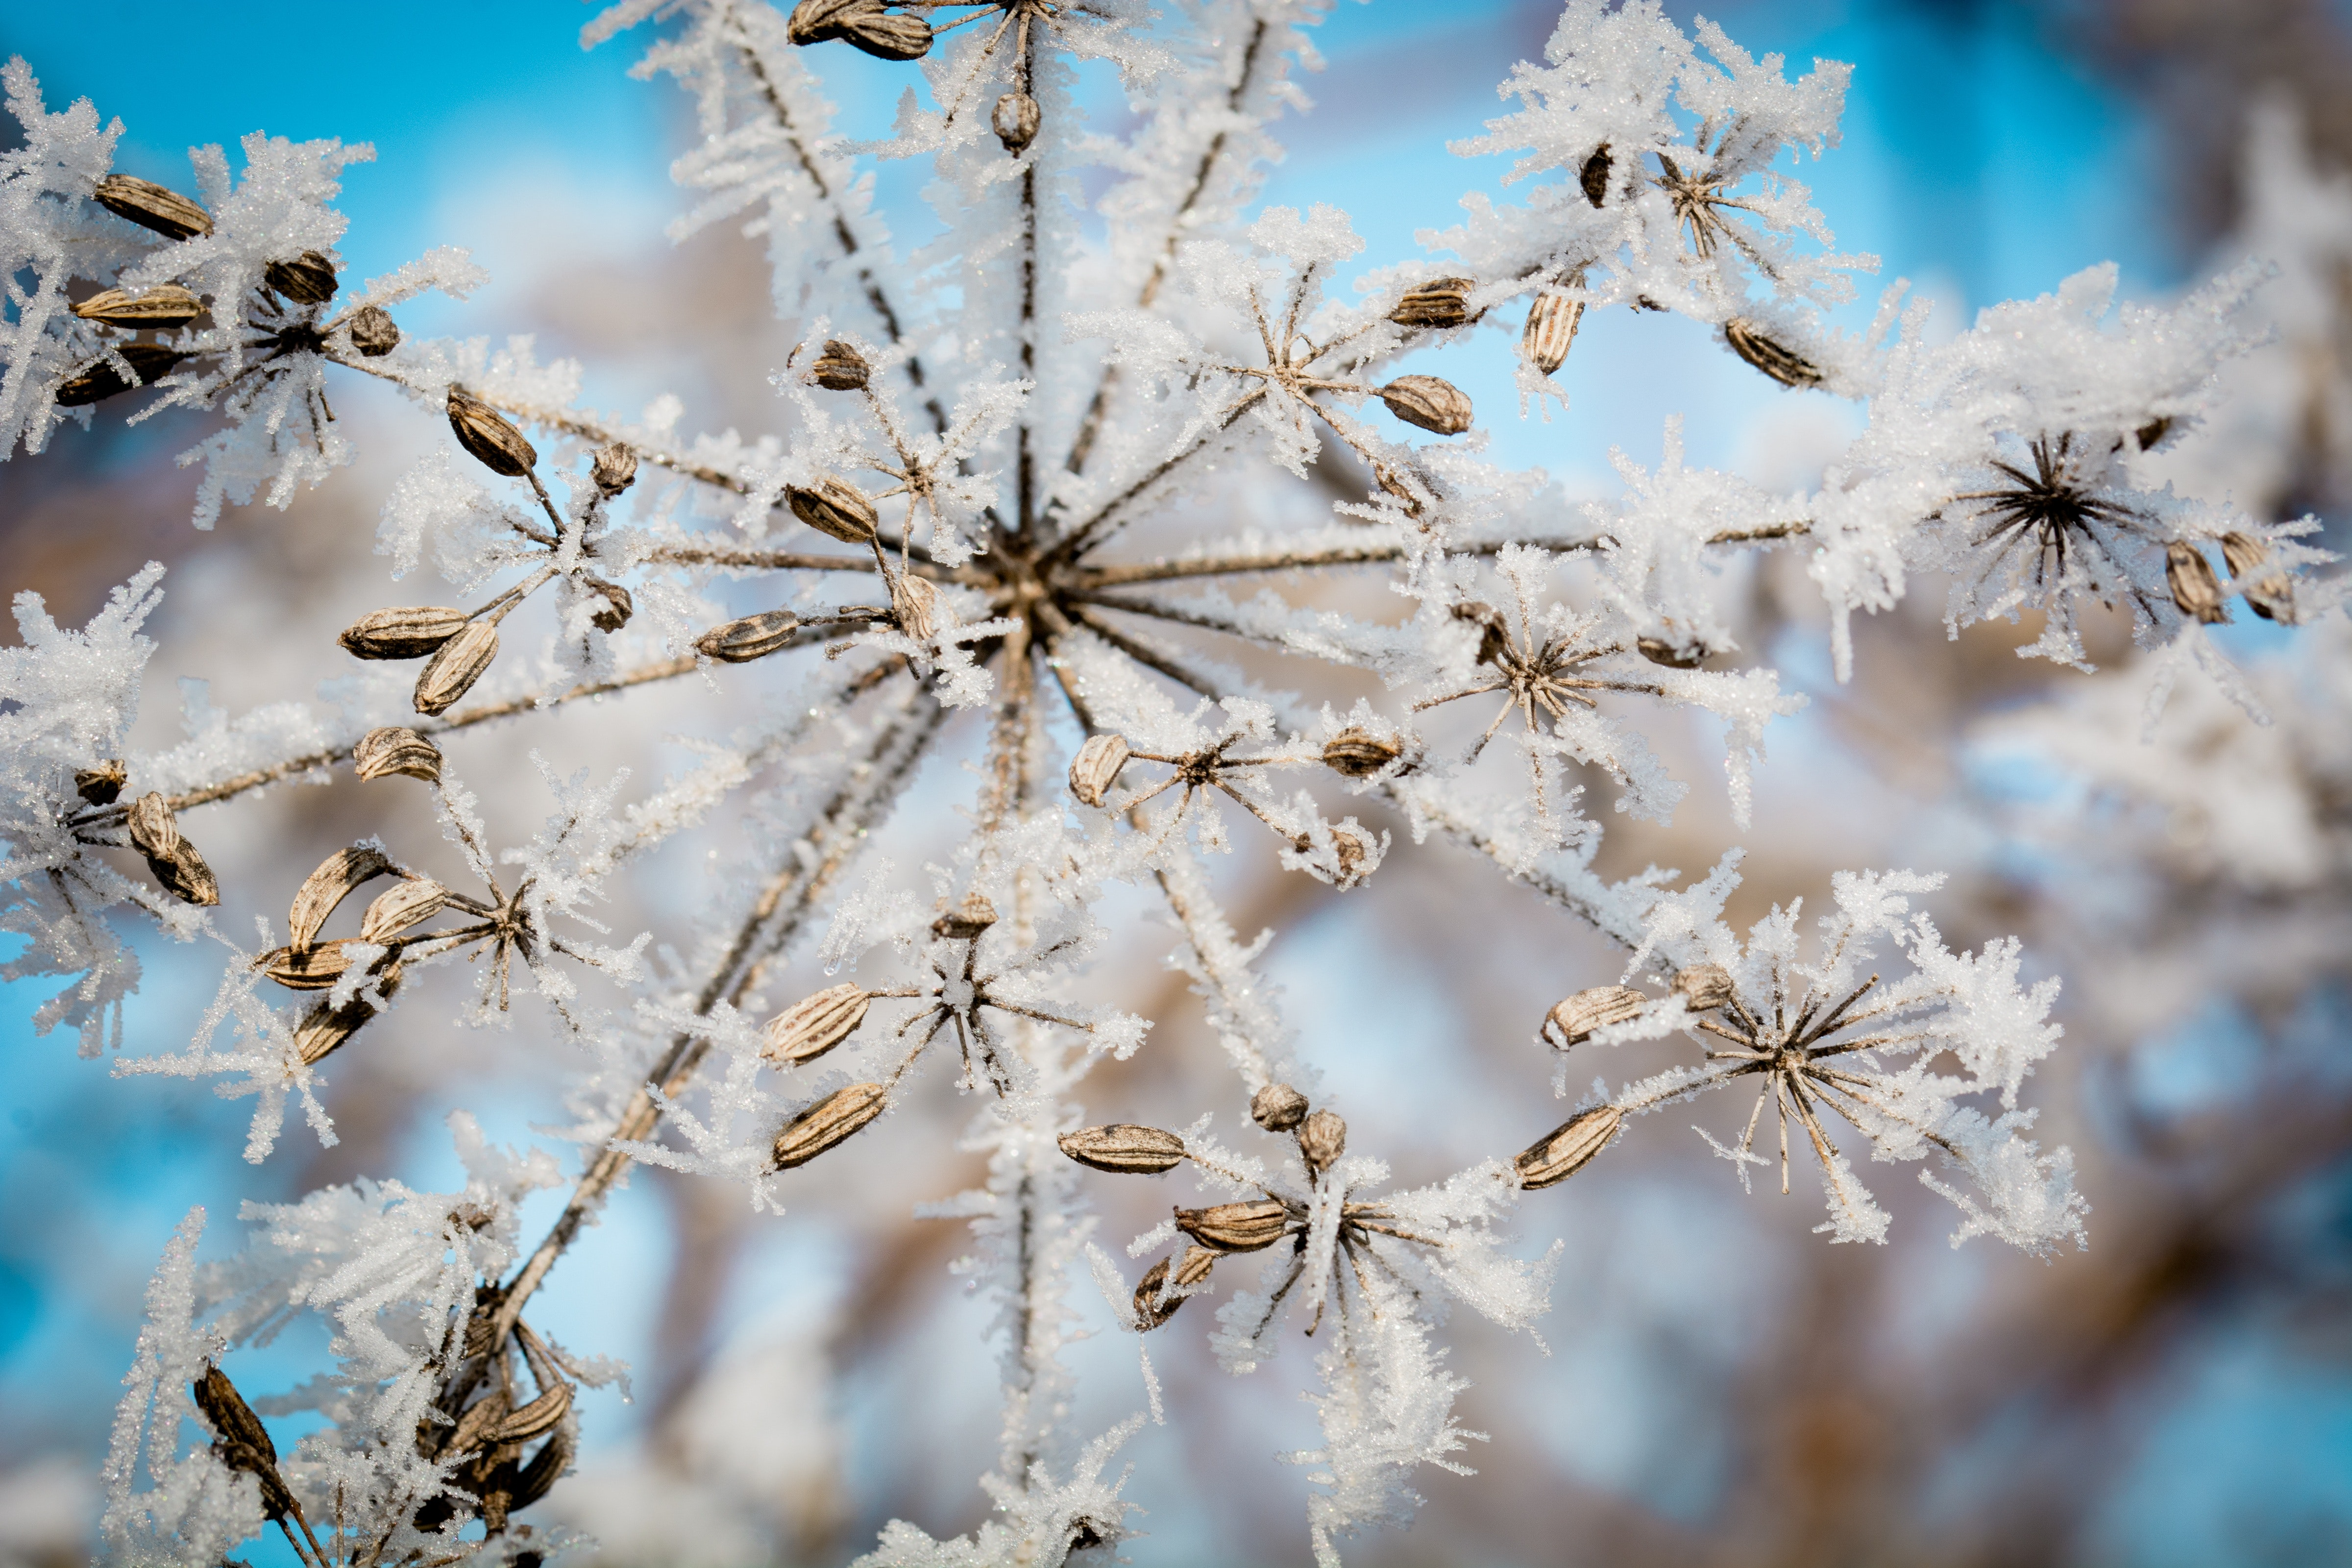 Close-up Photography of Snowflake · Free Stock Photo